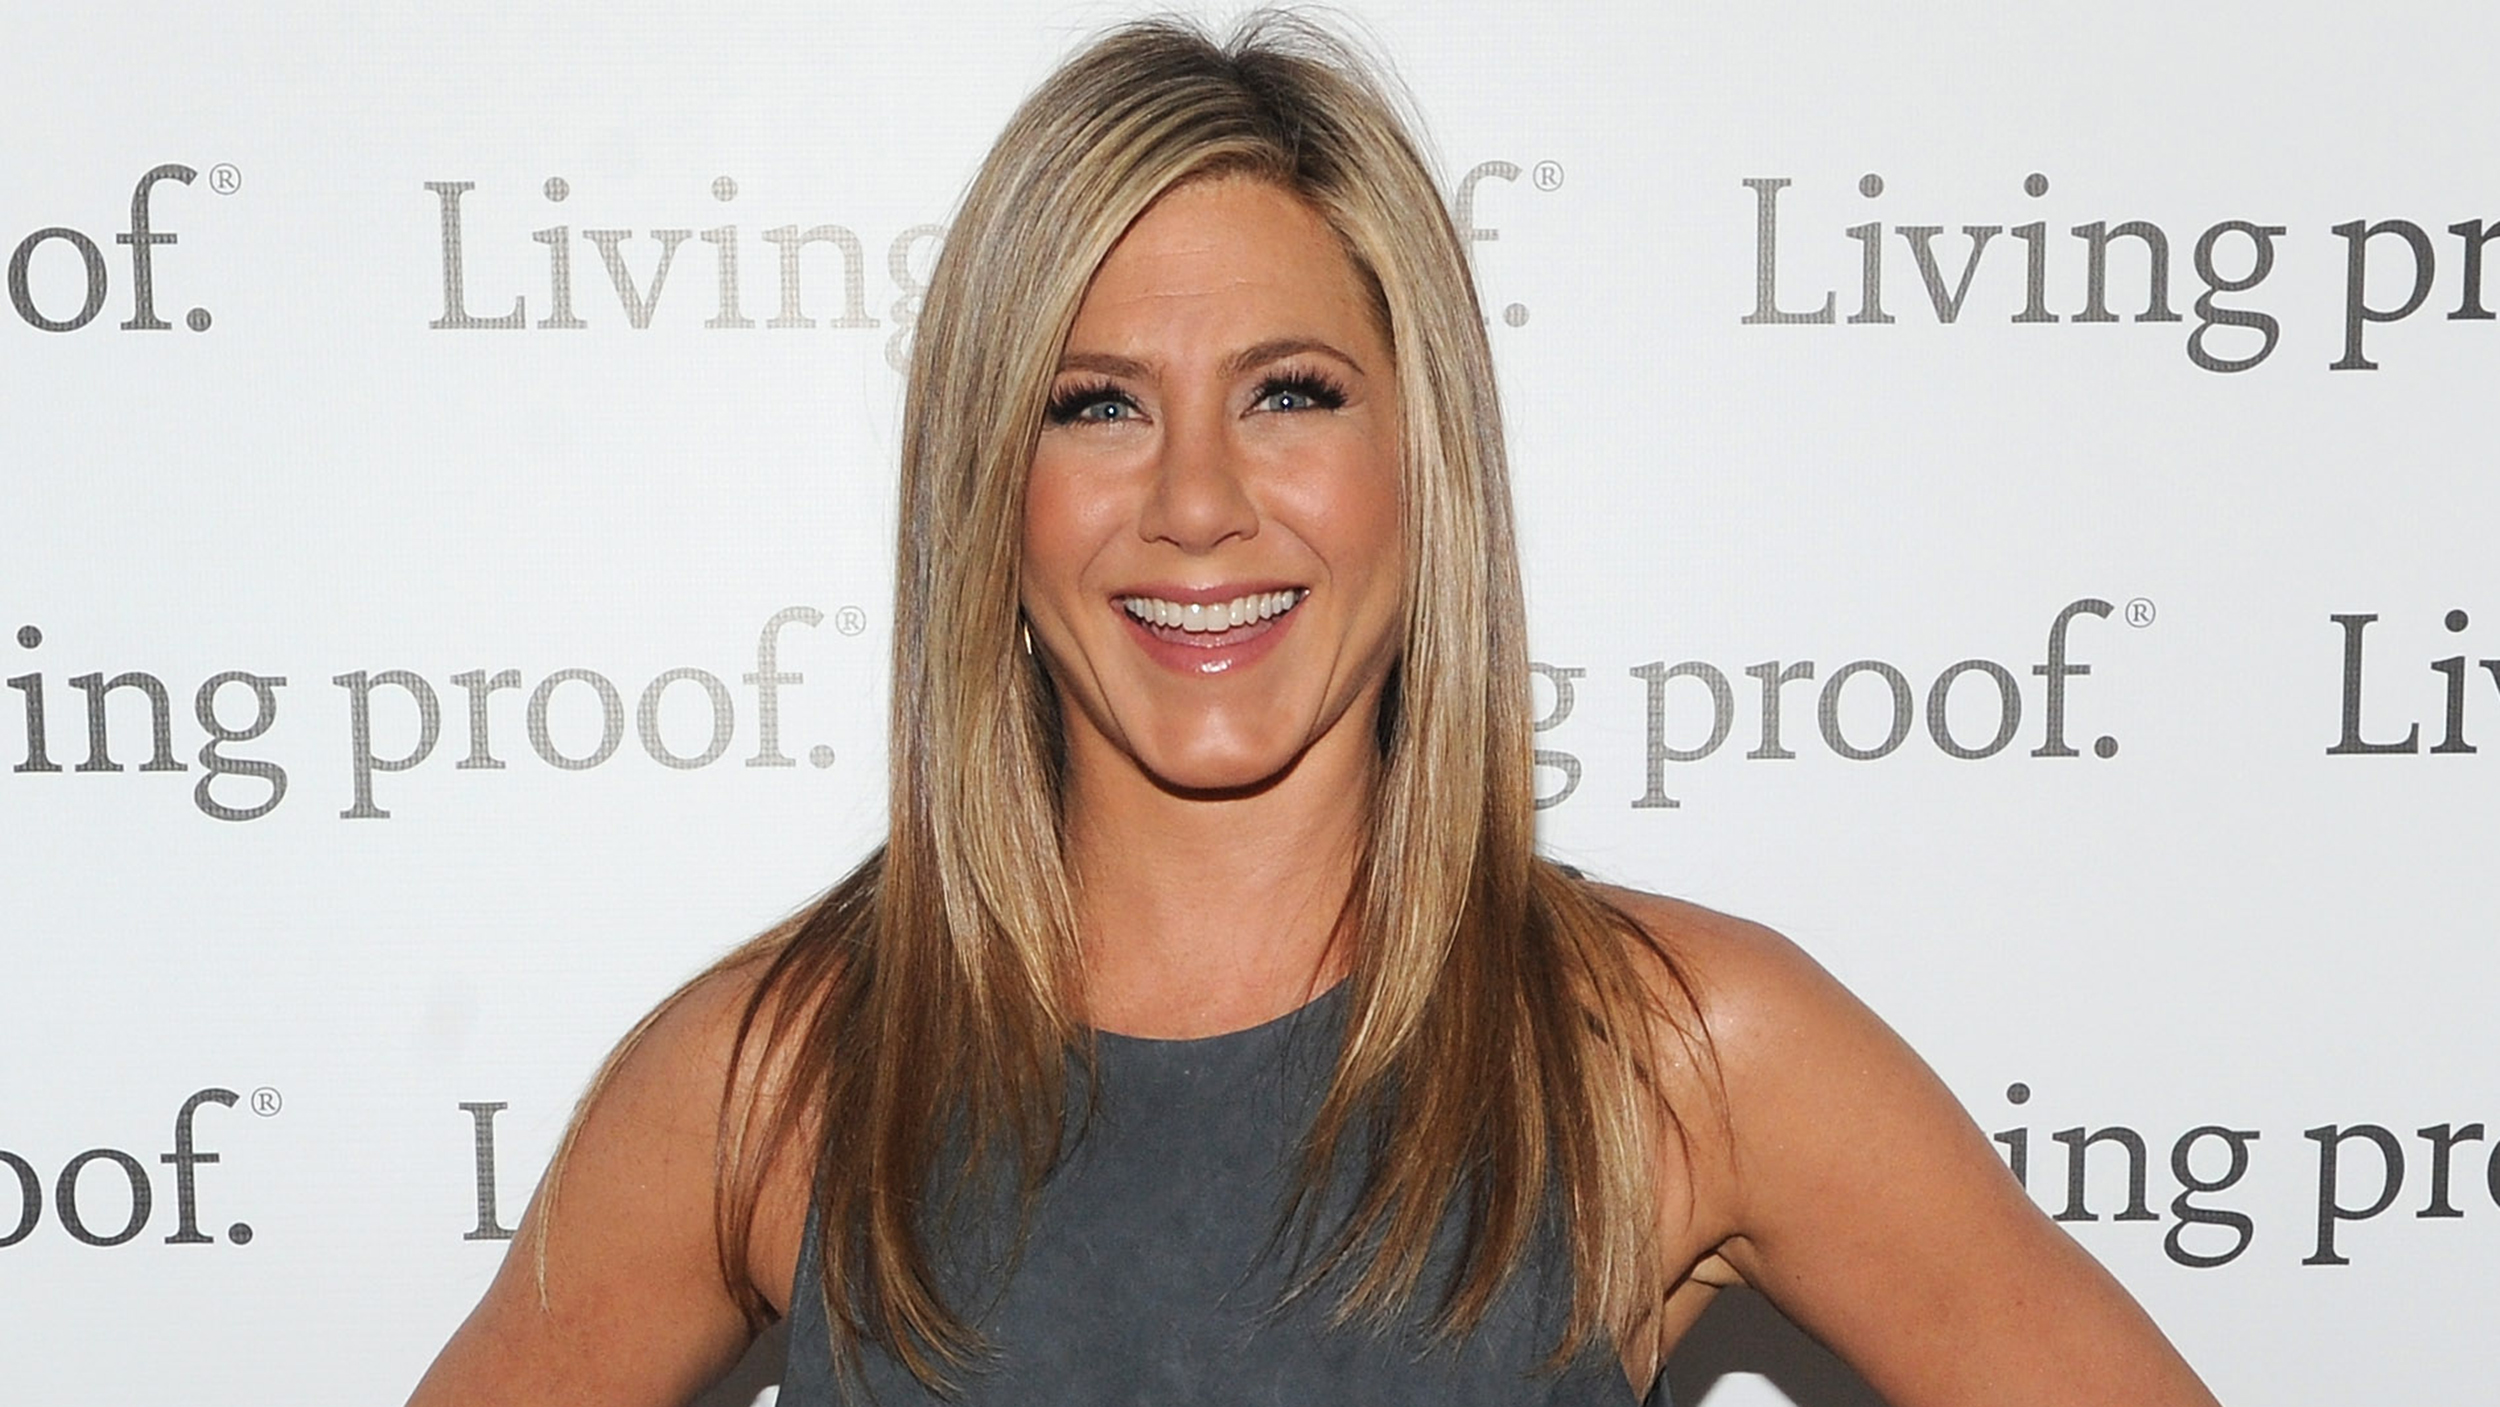 Jennifer Aniston: Jennifer Aniston Shared Her Morning Routine